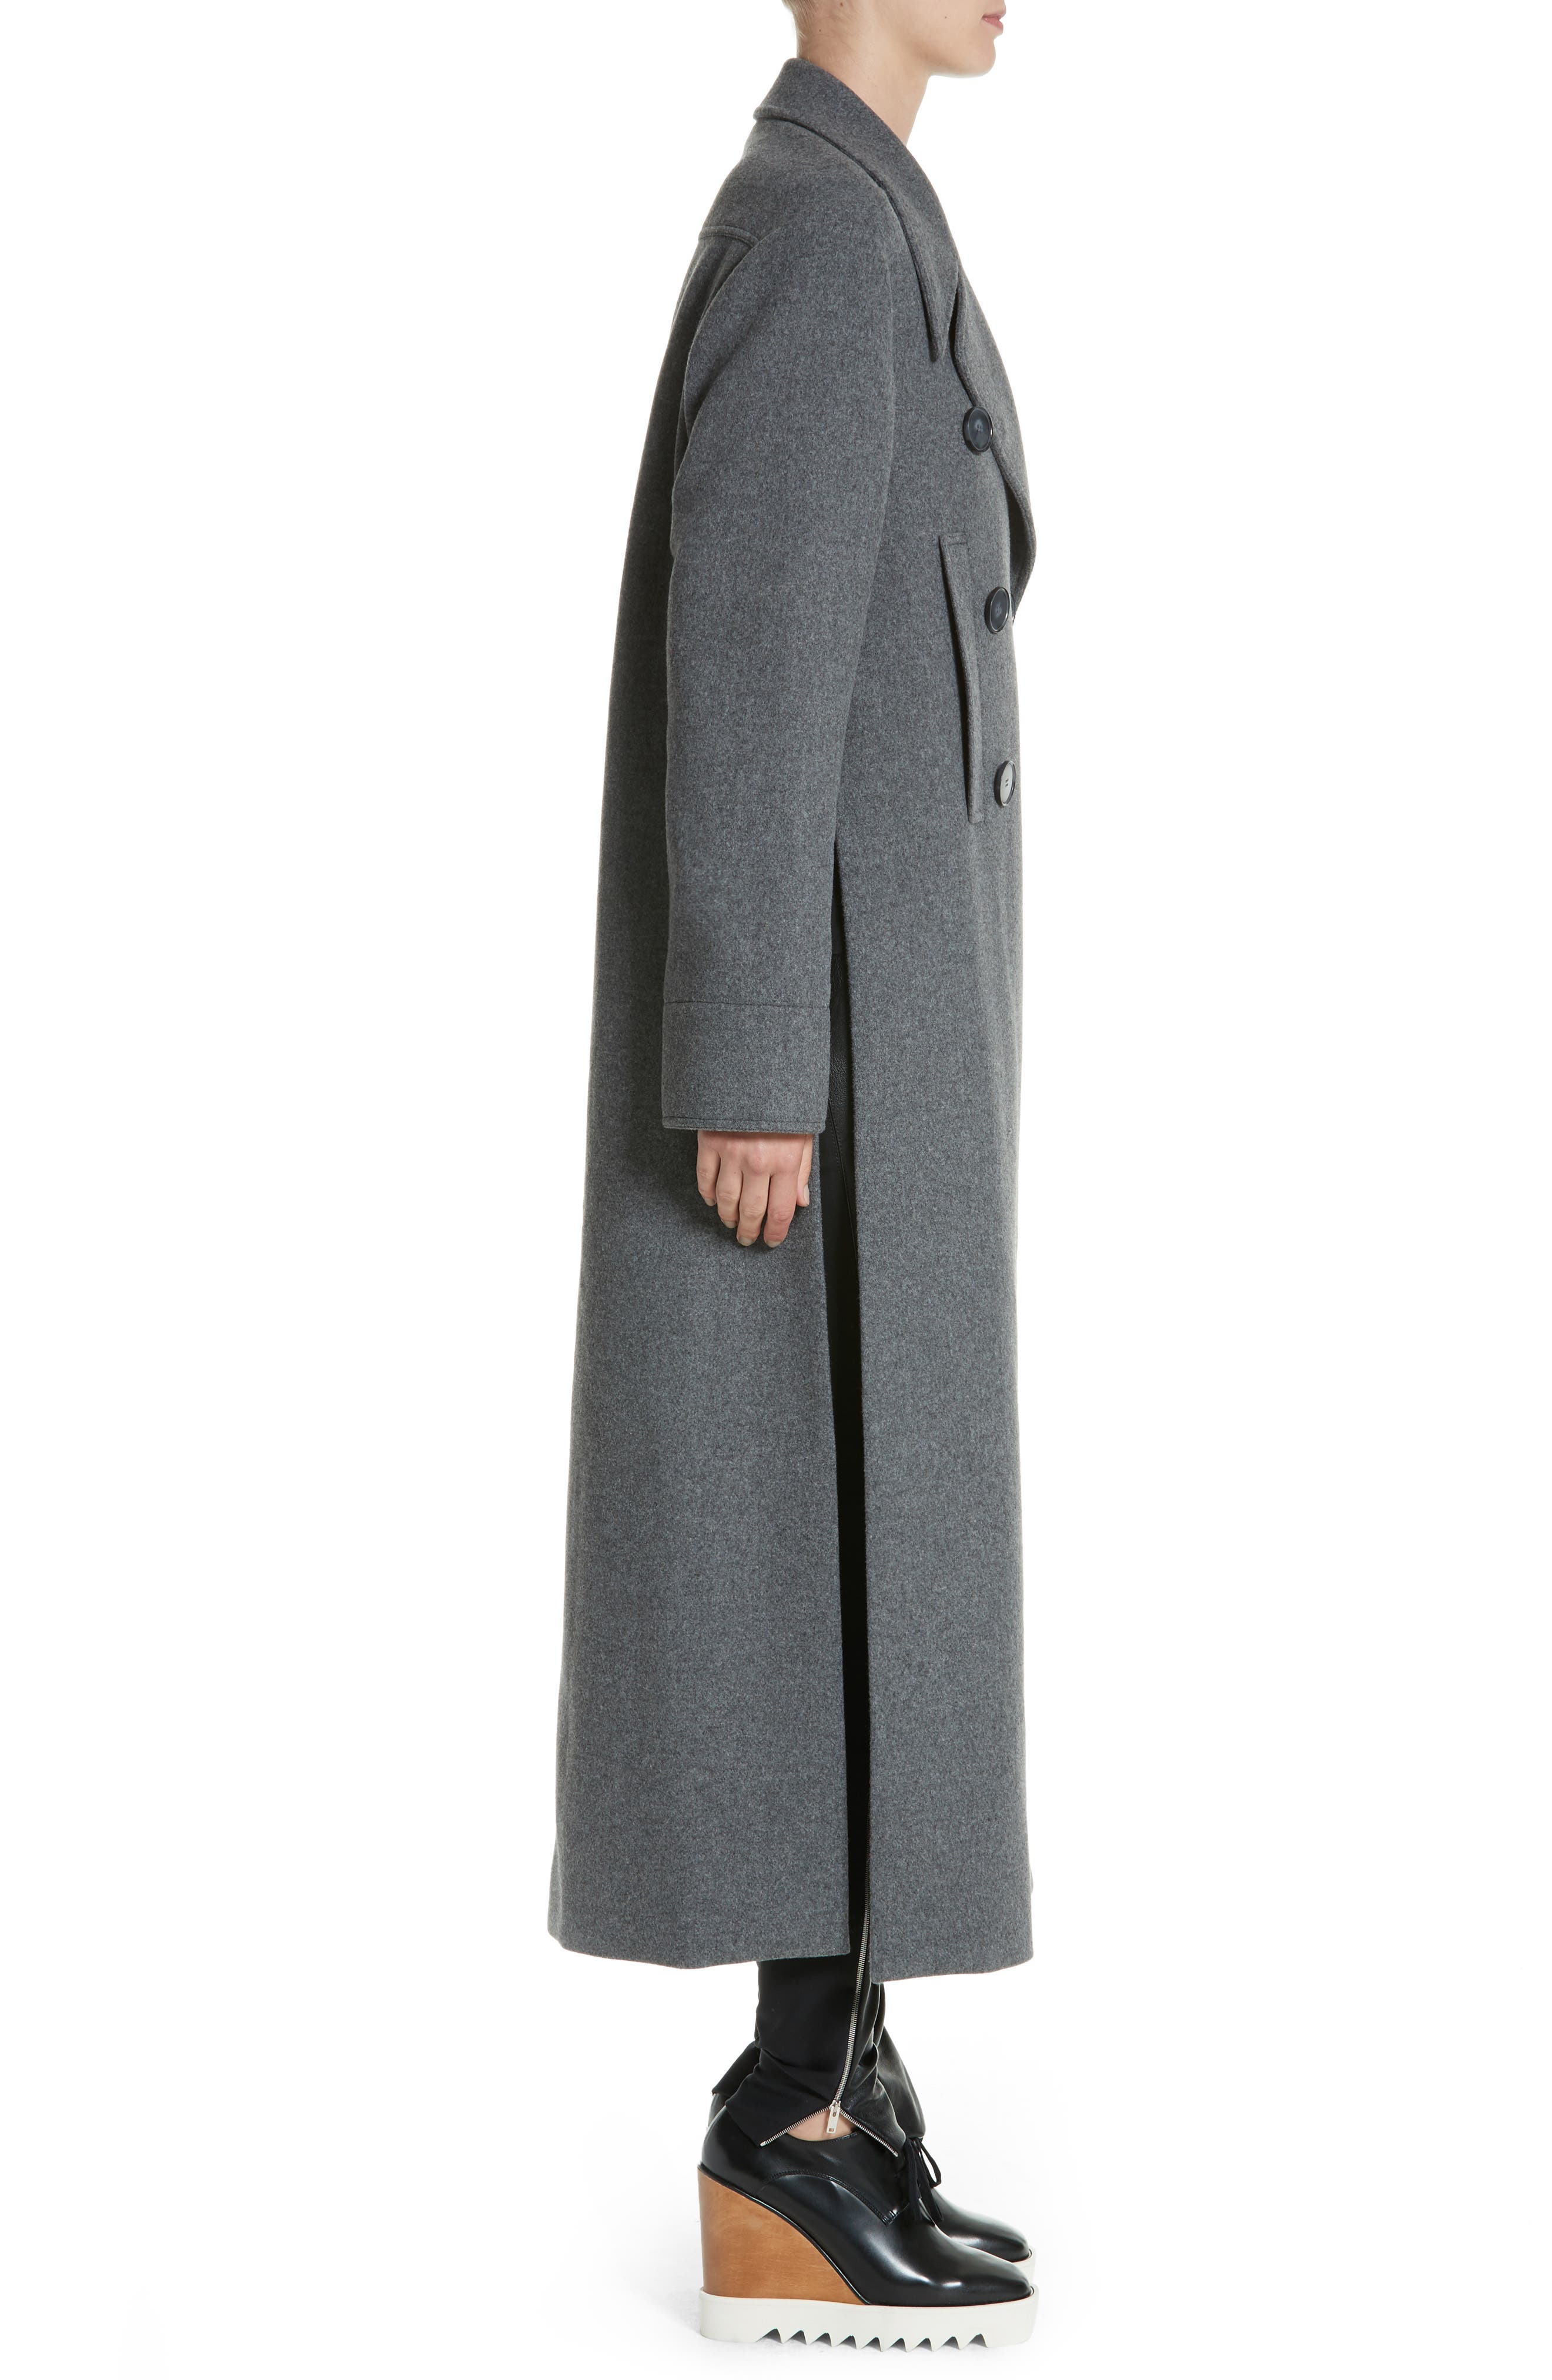 Edwina Long Double Breasted Wool Blend Coat,                             Alternate thumbnail 3, color,                             Graphite